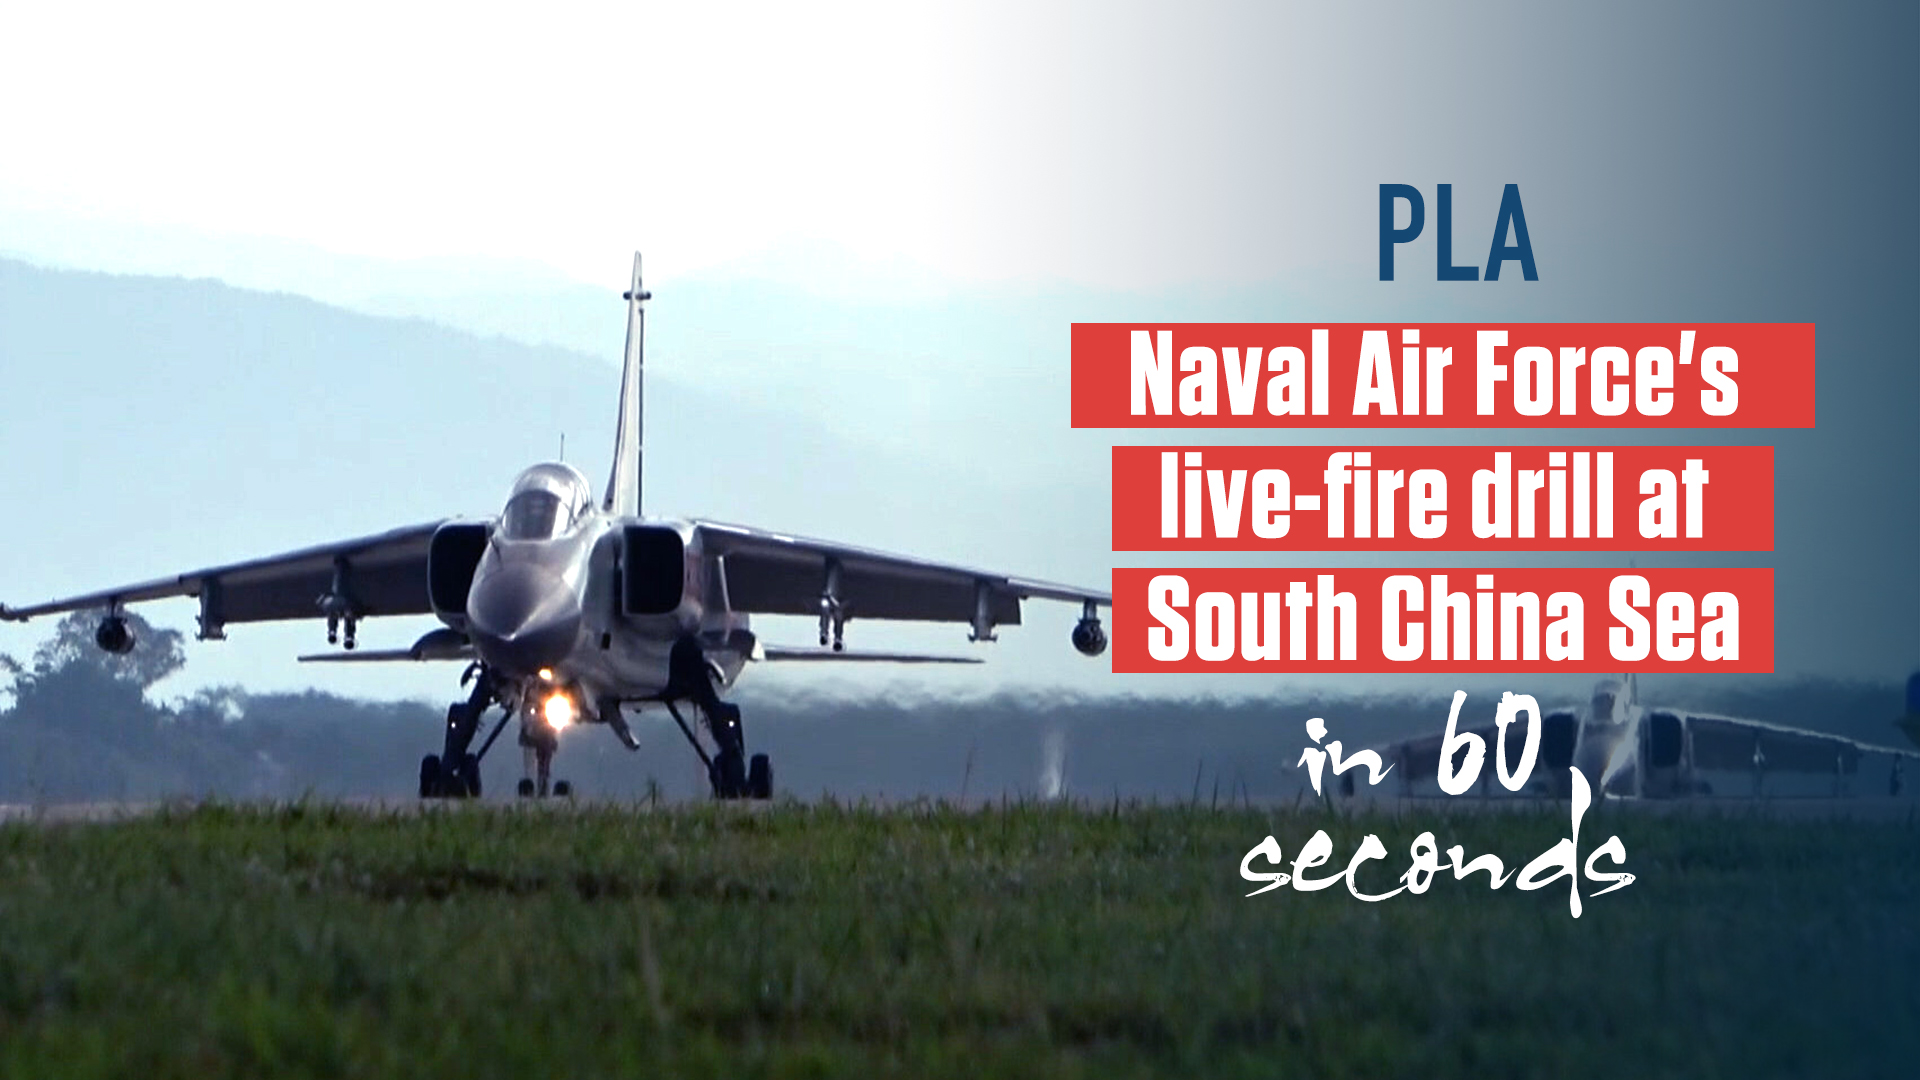 PLA Naval Air Force's live-fire drill in South China Sea in 60 seconds